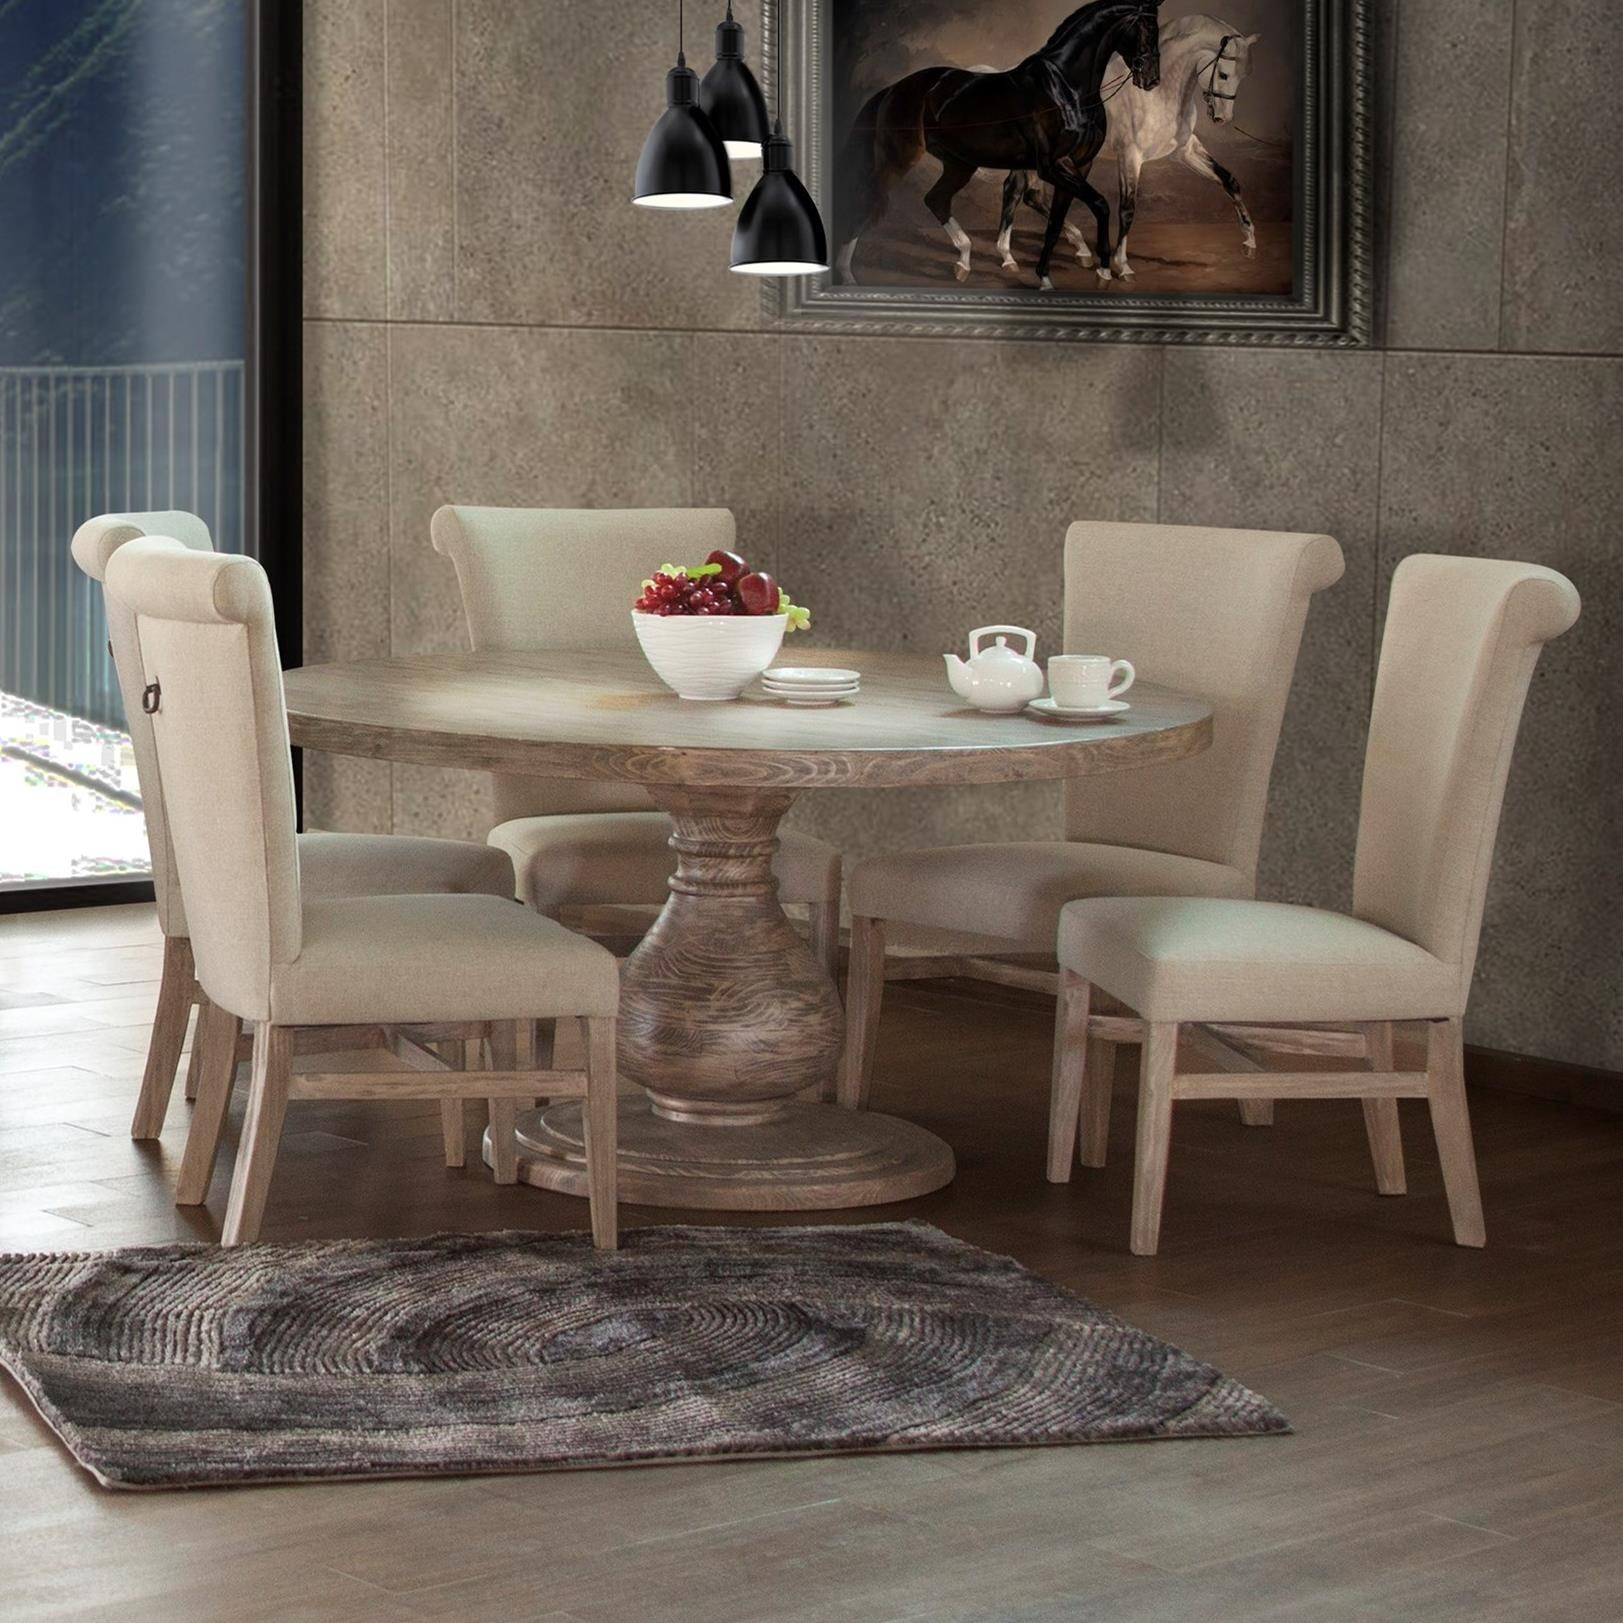 Bonanza Sand 6 Piece Table and Chair Set by International Furniture Direct at Furniture Superstore - Rochester, MN